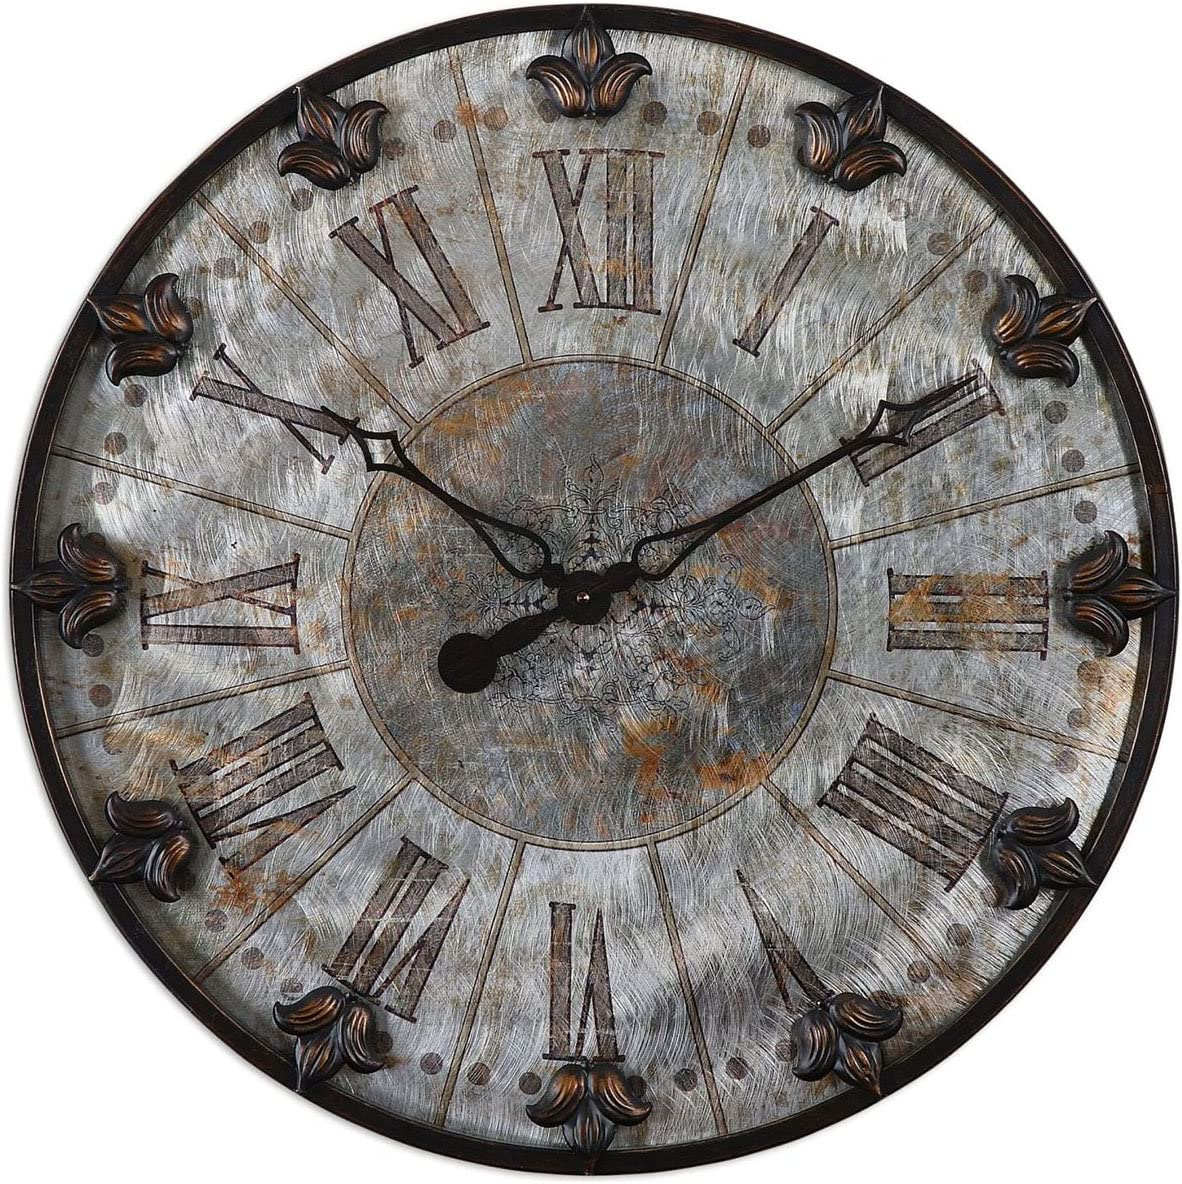 Uttermost 6643 Artemis Antique Wall Clock, Bronze